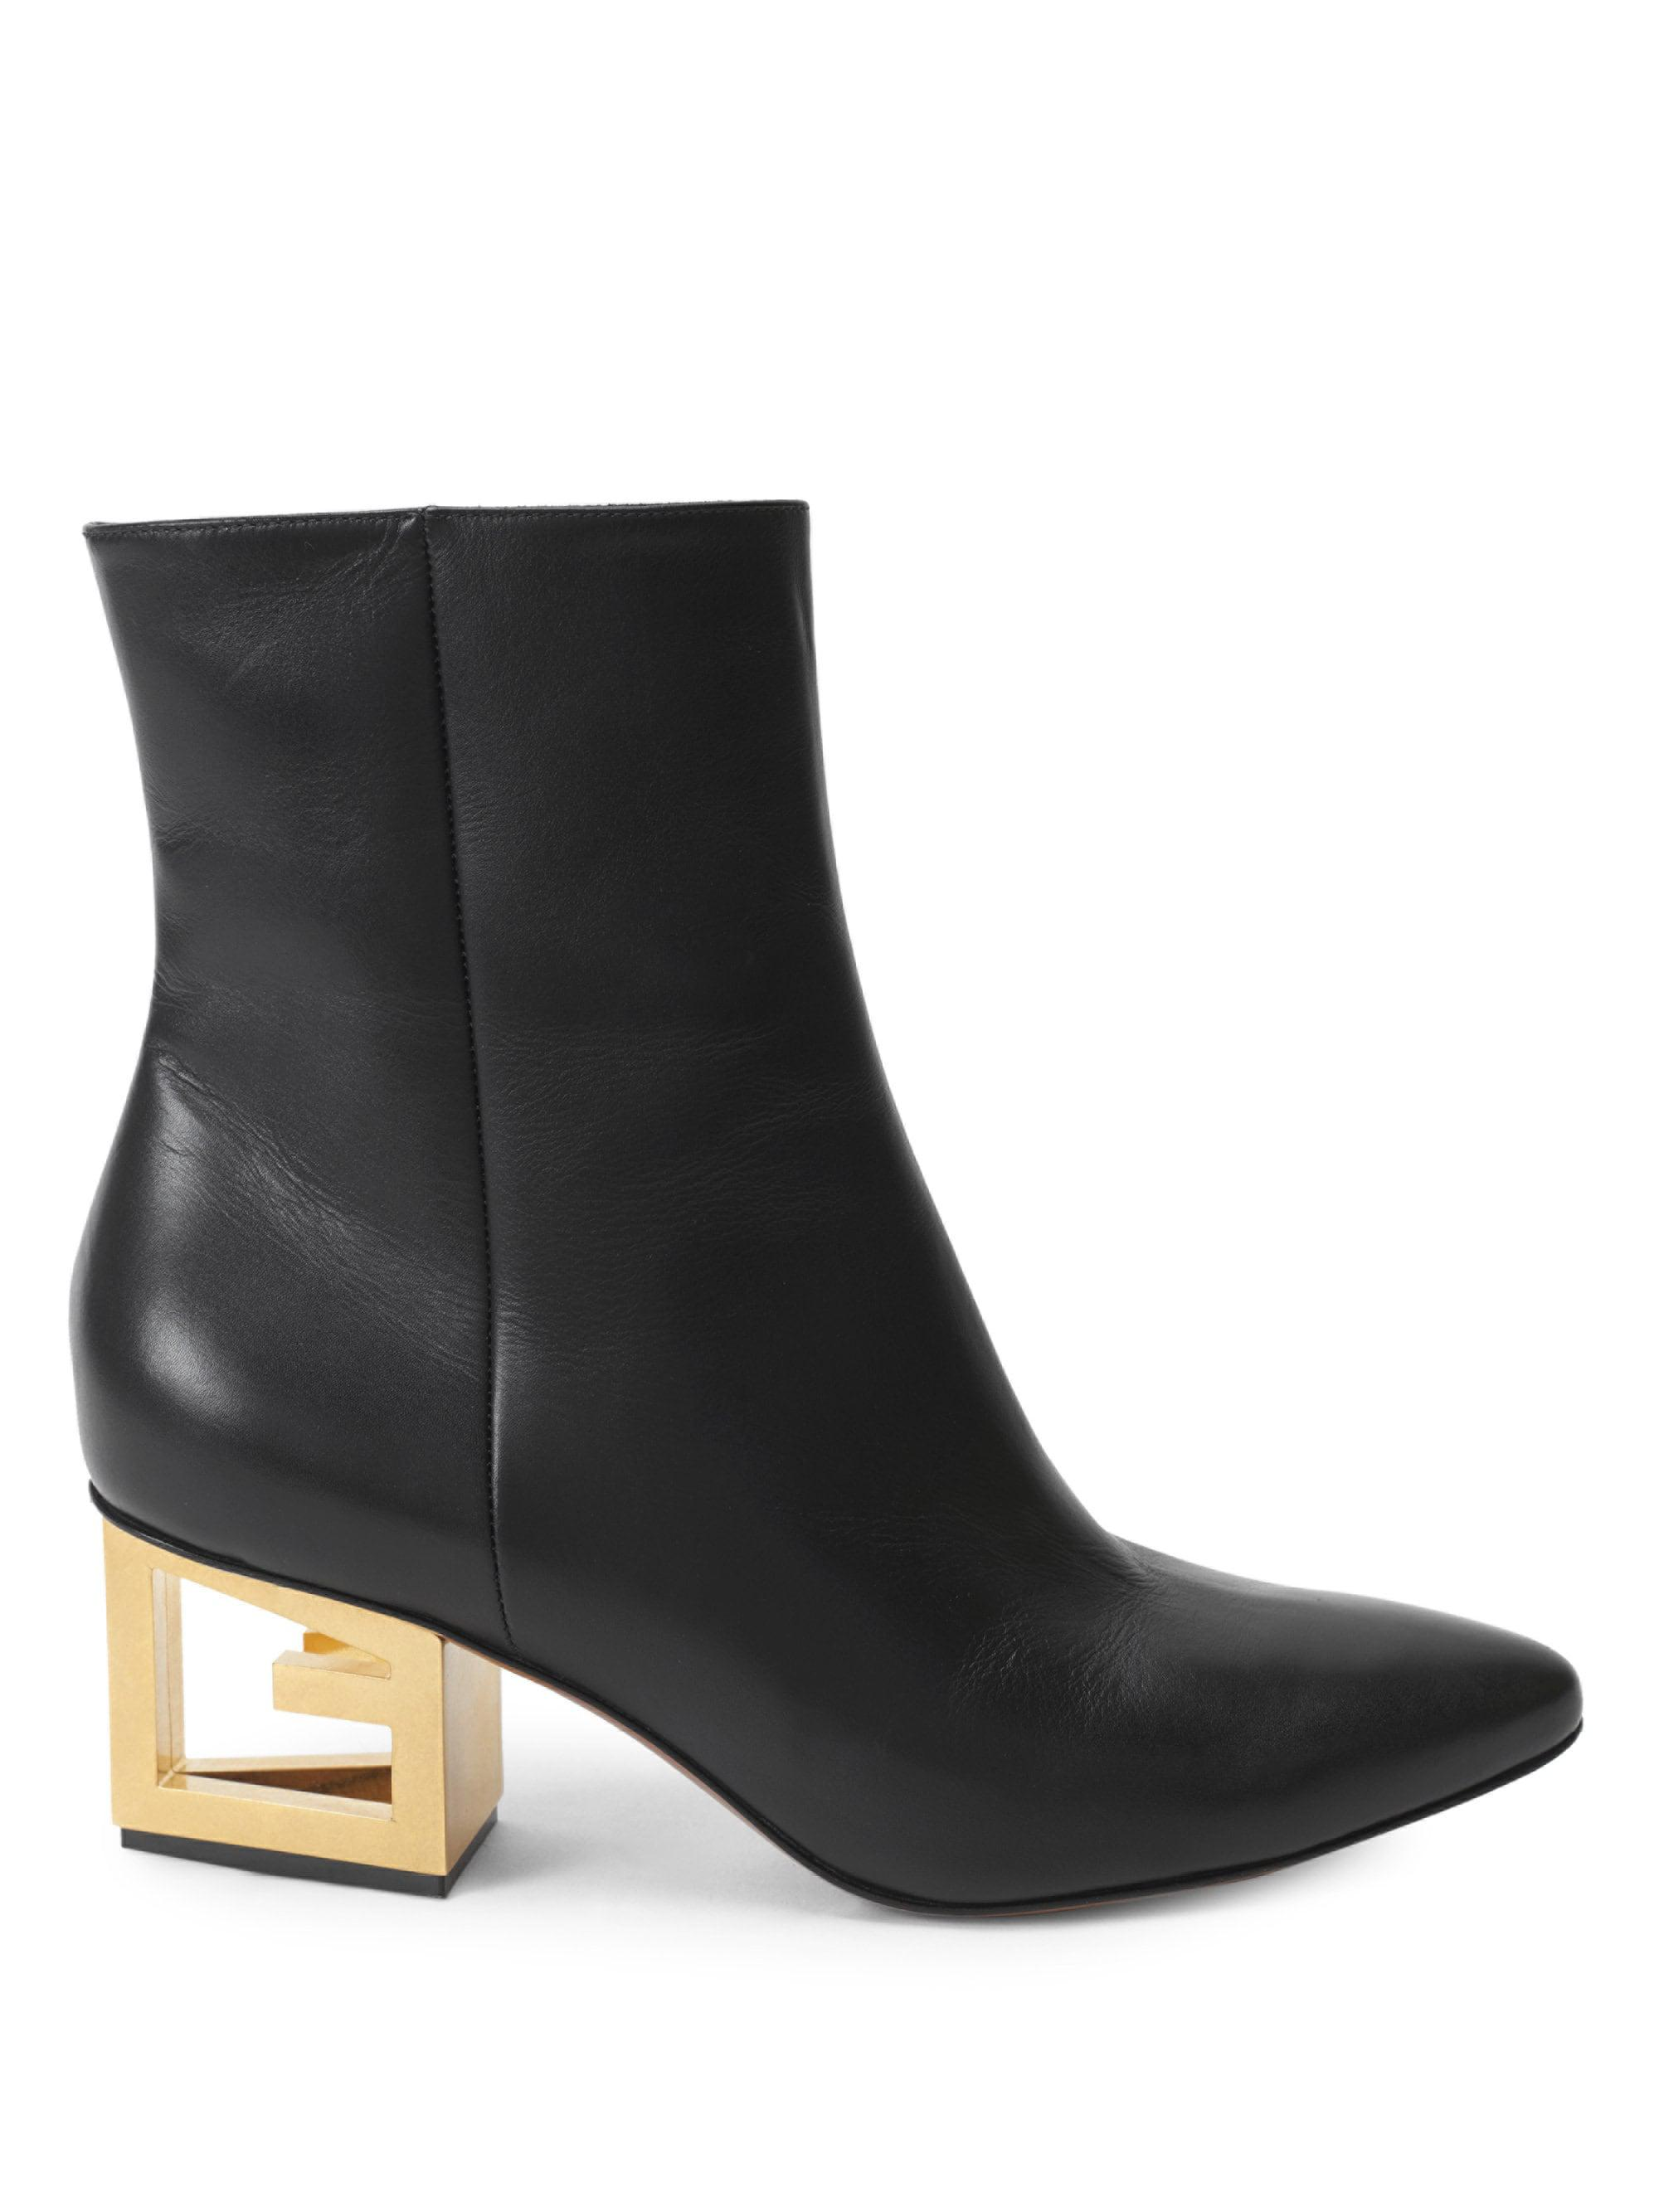 Givenchy Logo-heel Leather Ankle Boots